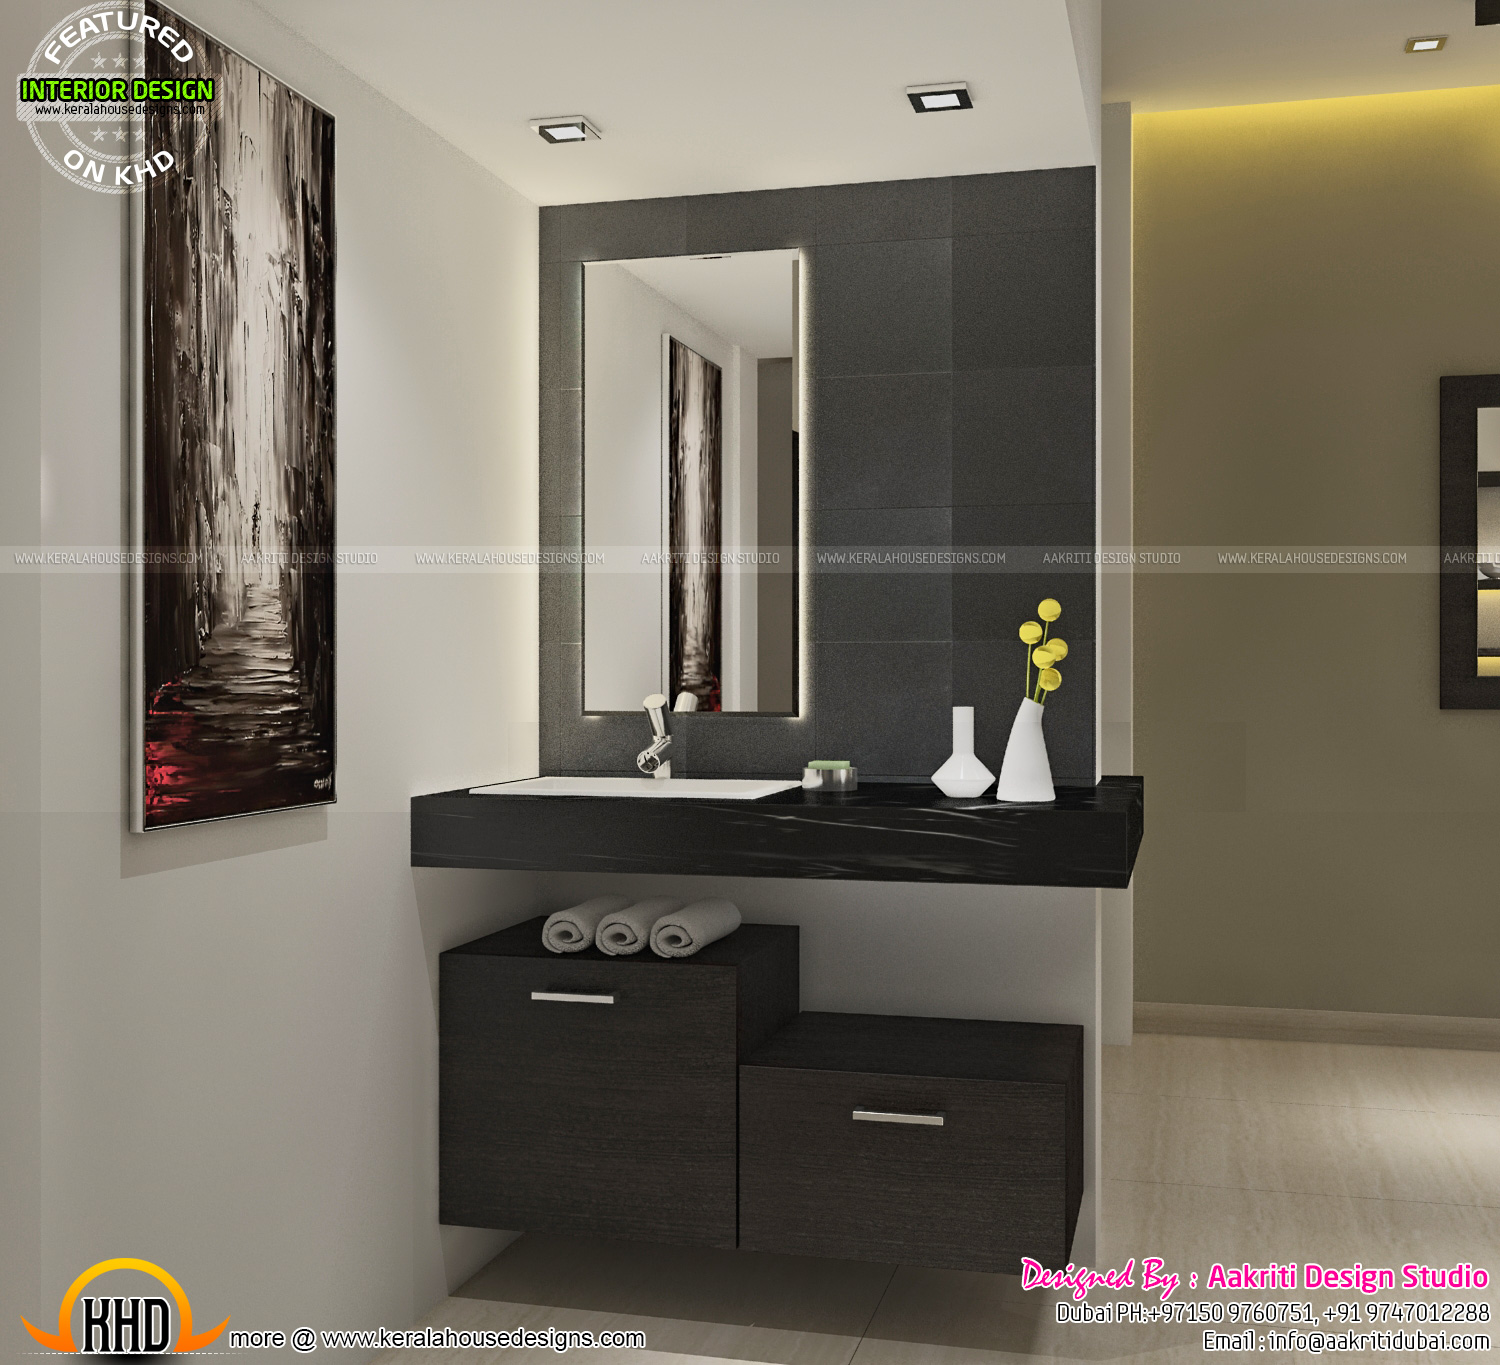 Kerala House Designs Plans Interior: Dining, Kitchen, Wash Area Interior